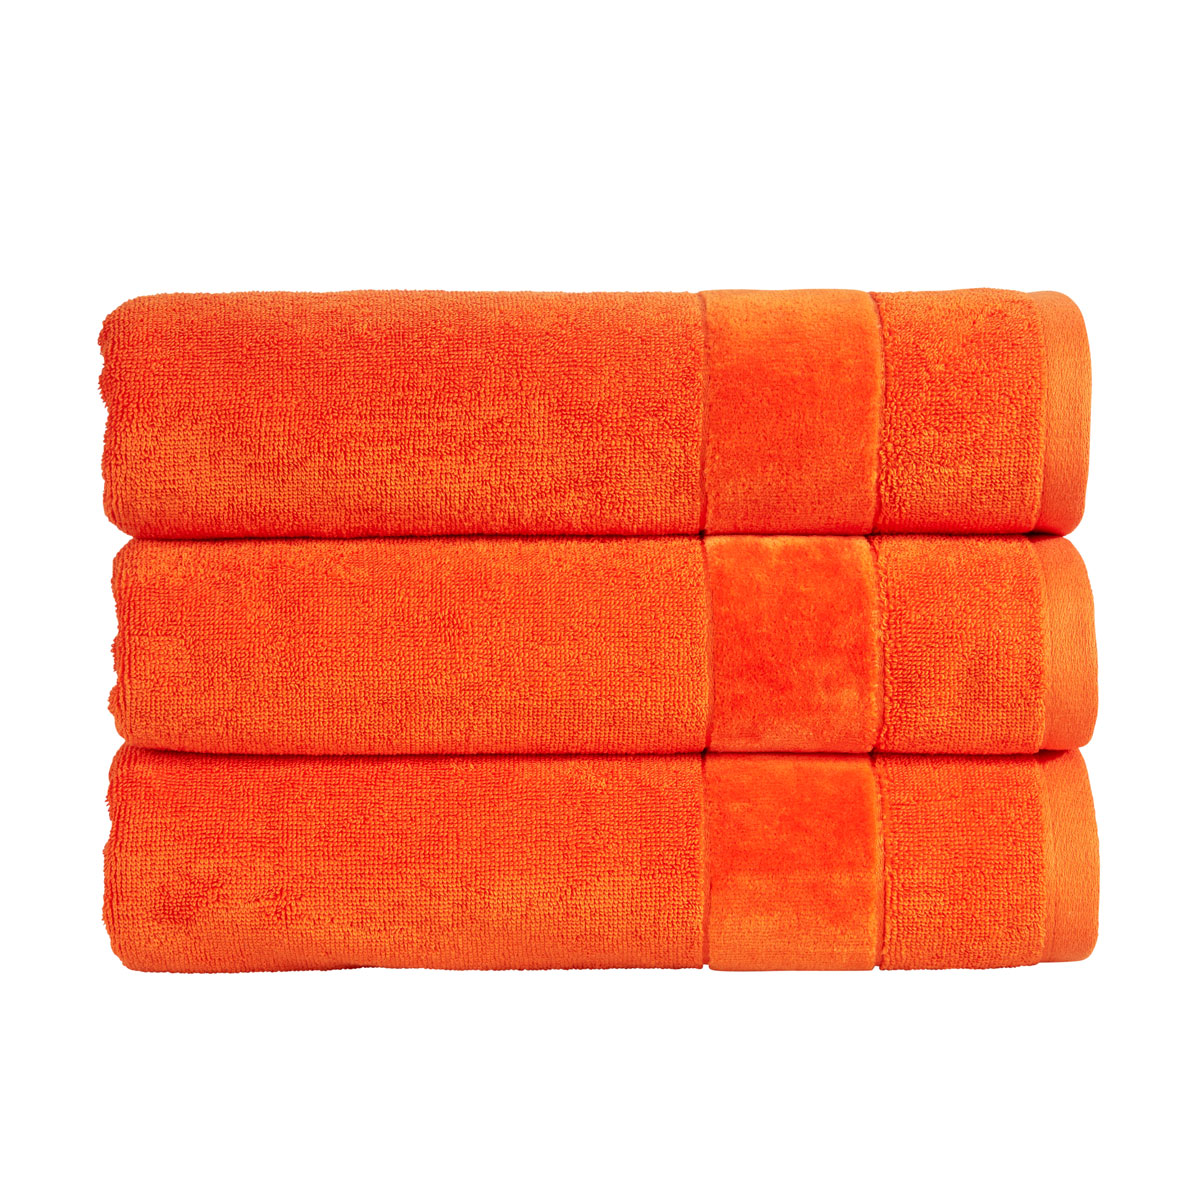 An image of Luxury Turkish Cotton Prism Face Cloth in Orangeade by Christy